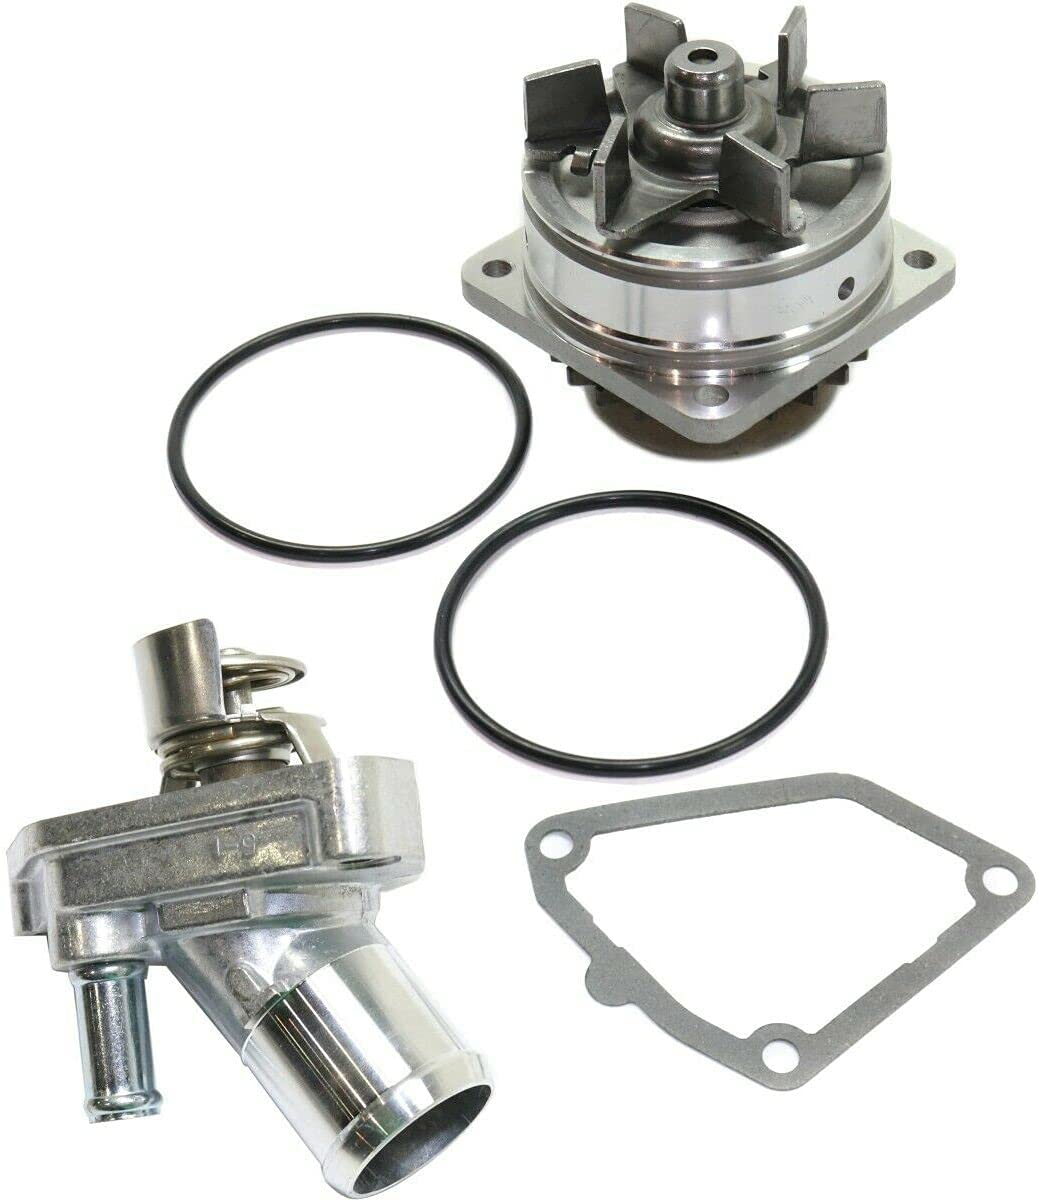 Water Pump New Free Shipping Don't miss the campaign Kit Compatible with Pathfinder Nissan QX4 Infiniti 20